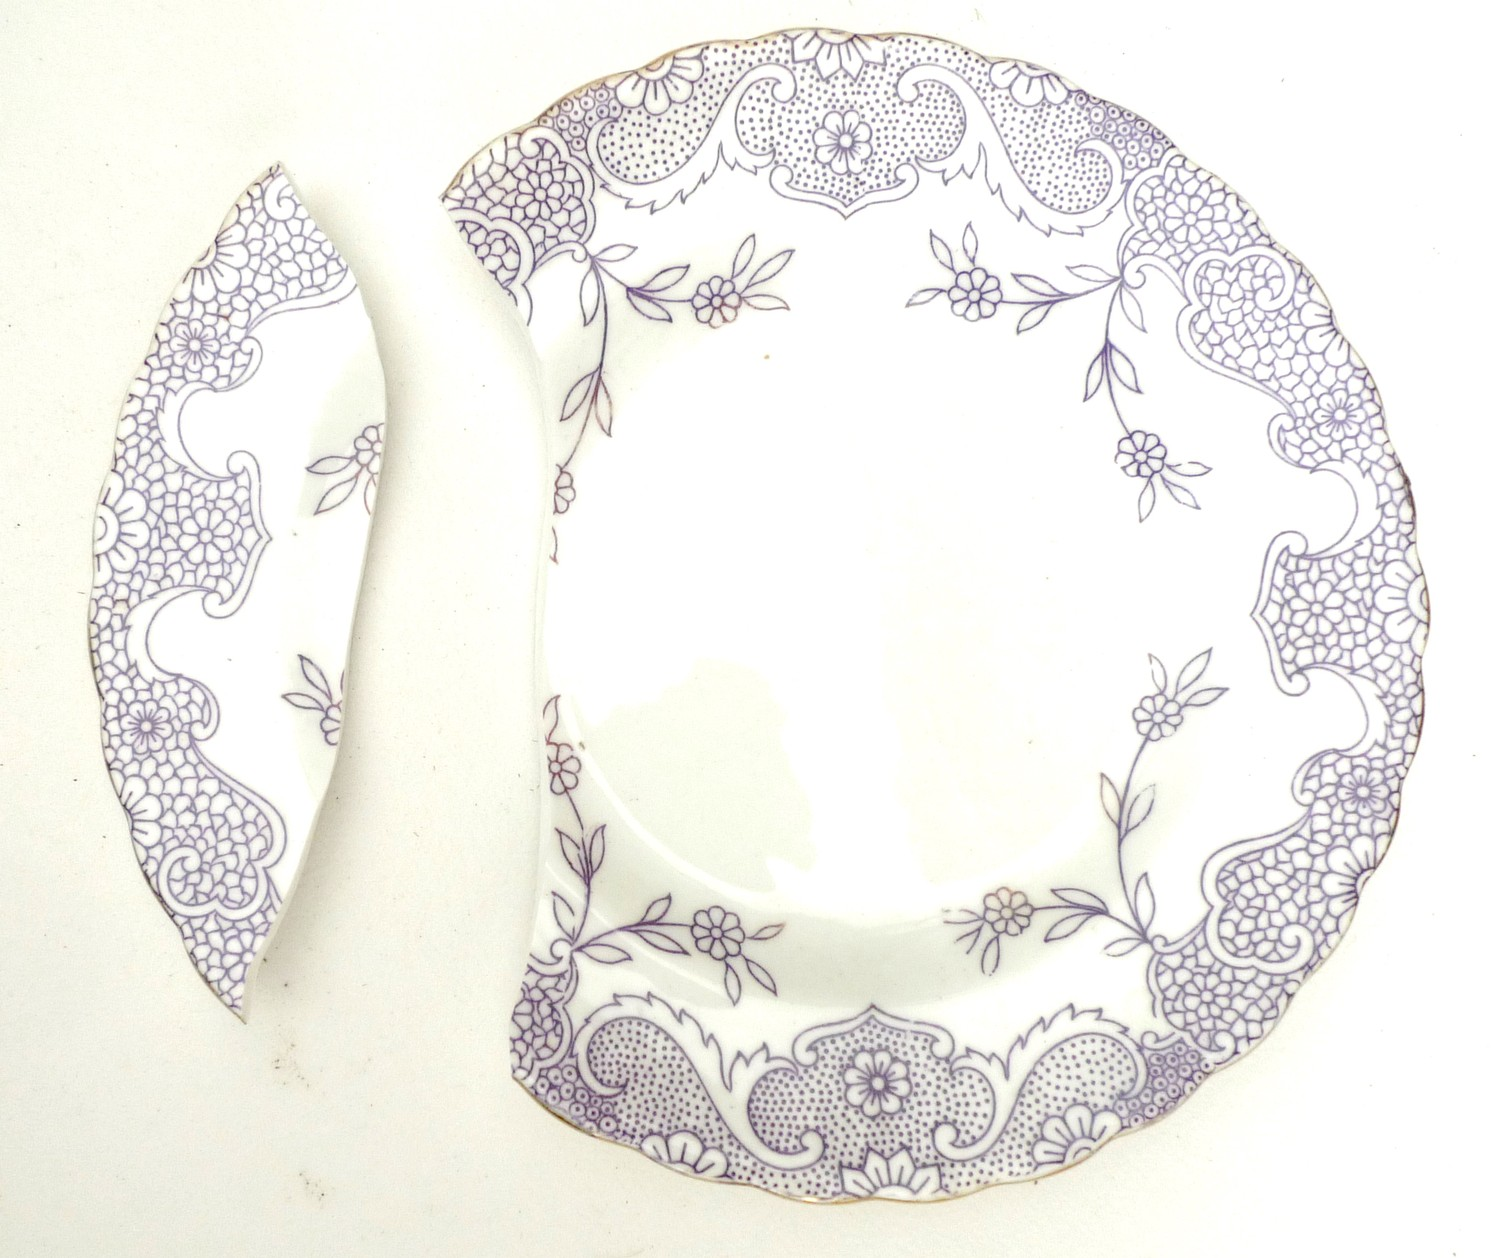 A collection of ceramics, including a vintage Royal Staffordshire, by Clarice Cliff part service, - Image 2 of 3